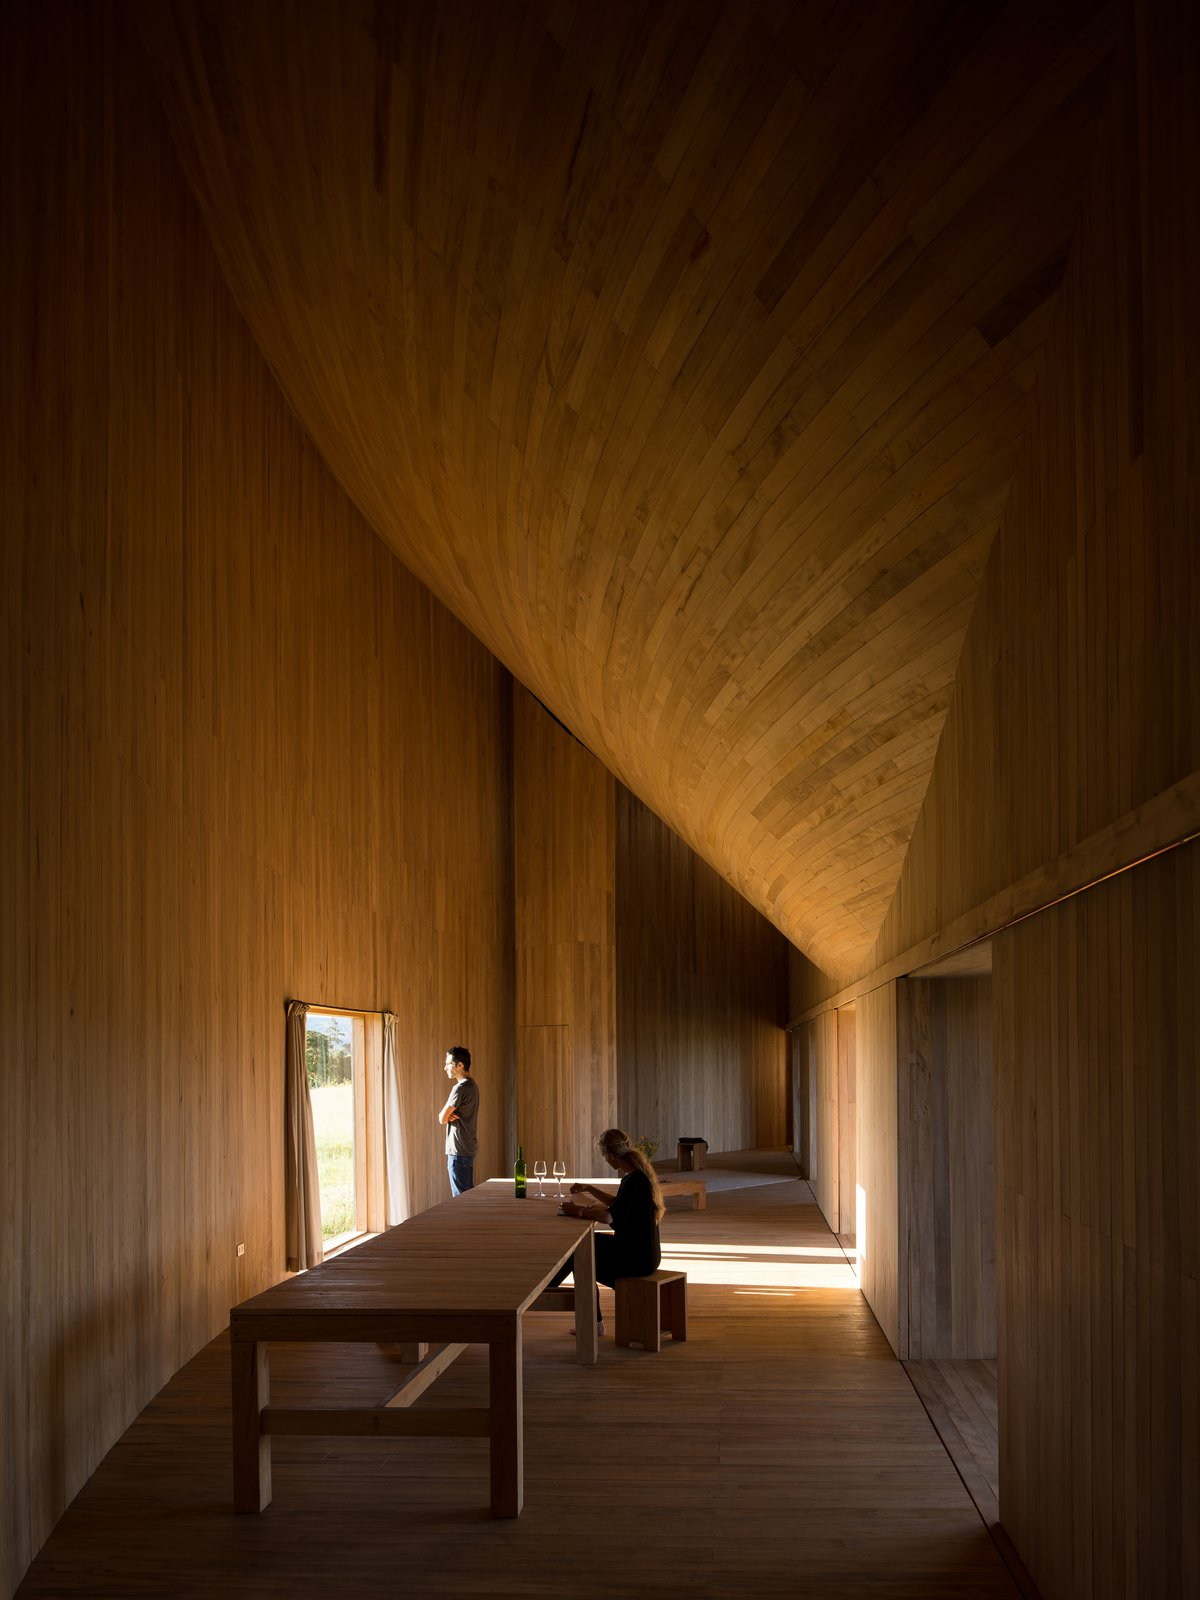 In the mid-section of the arc, is a simple living and dining space.